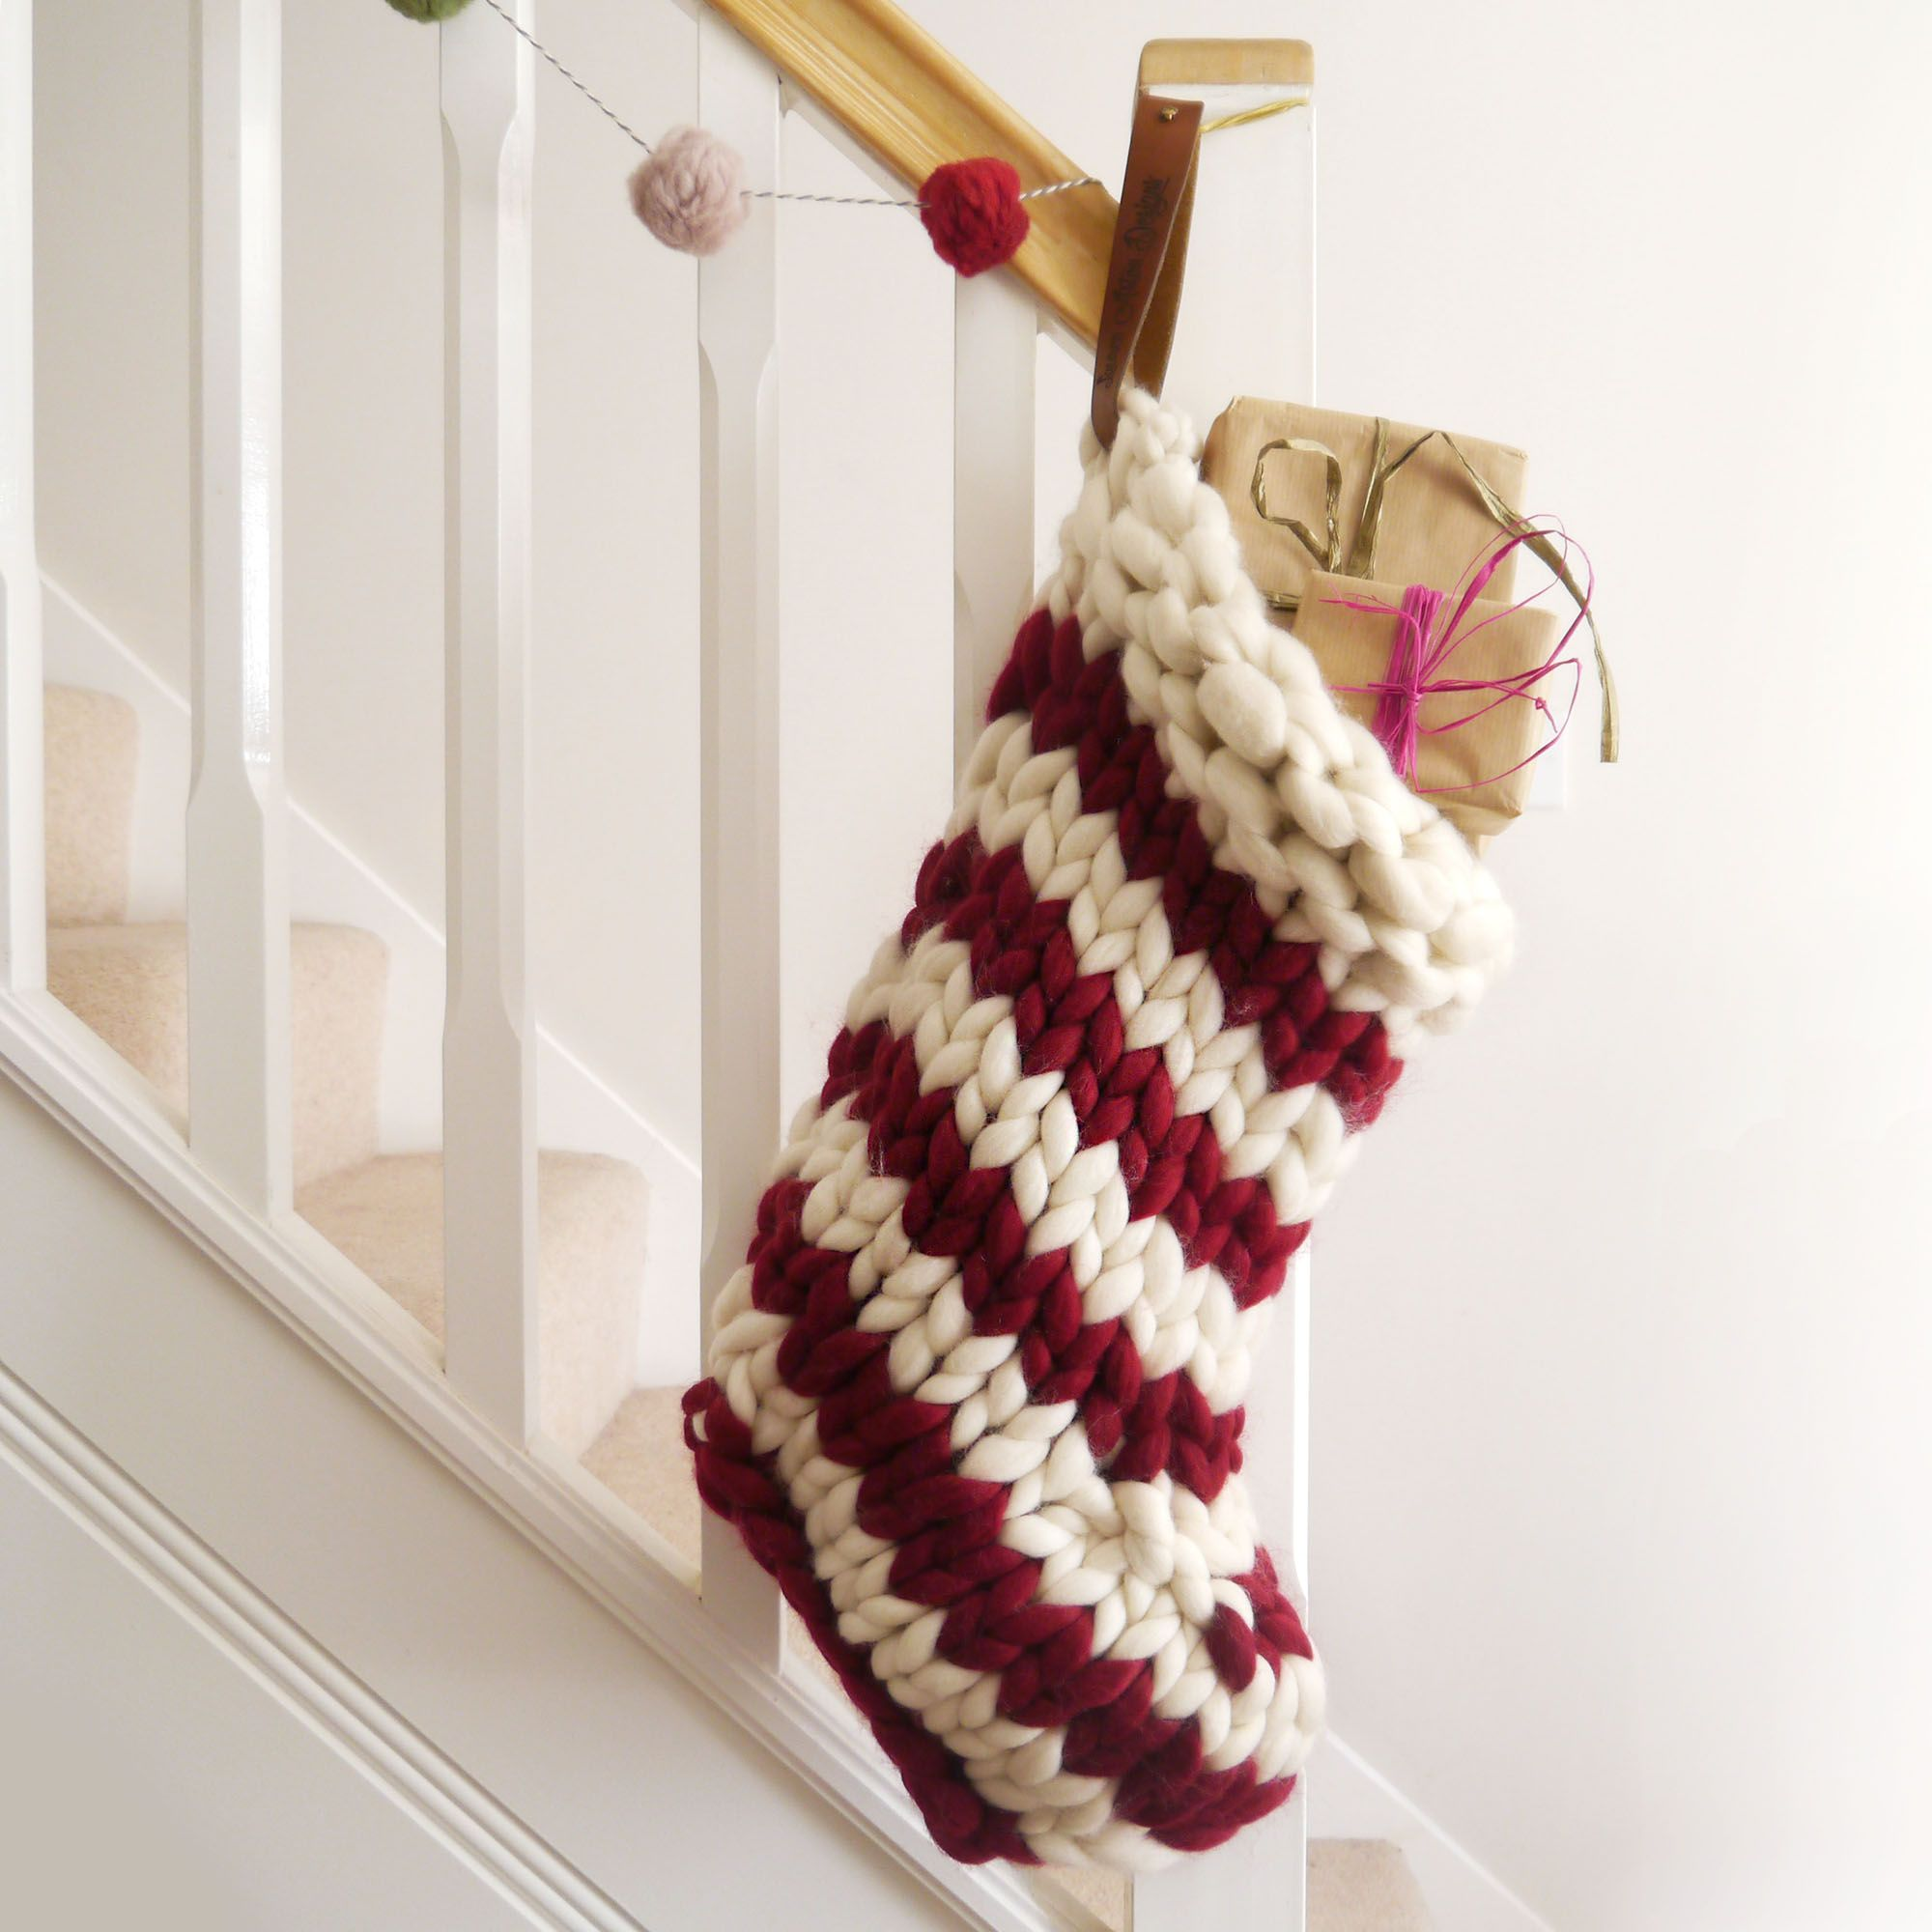 Chunky Hand Knitted Christmas Stocking Knitted Christmas Decorations Knitted Christmas Stockings Christmas Knitting